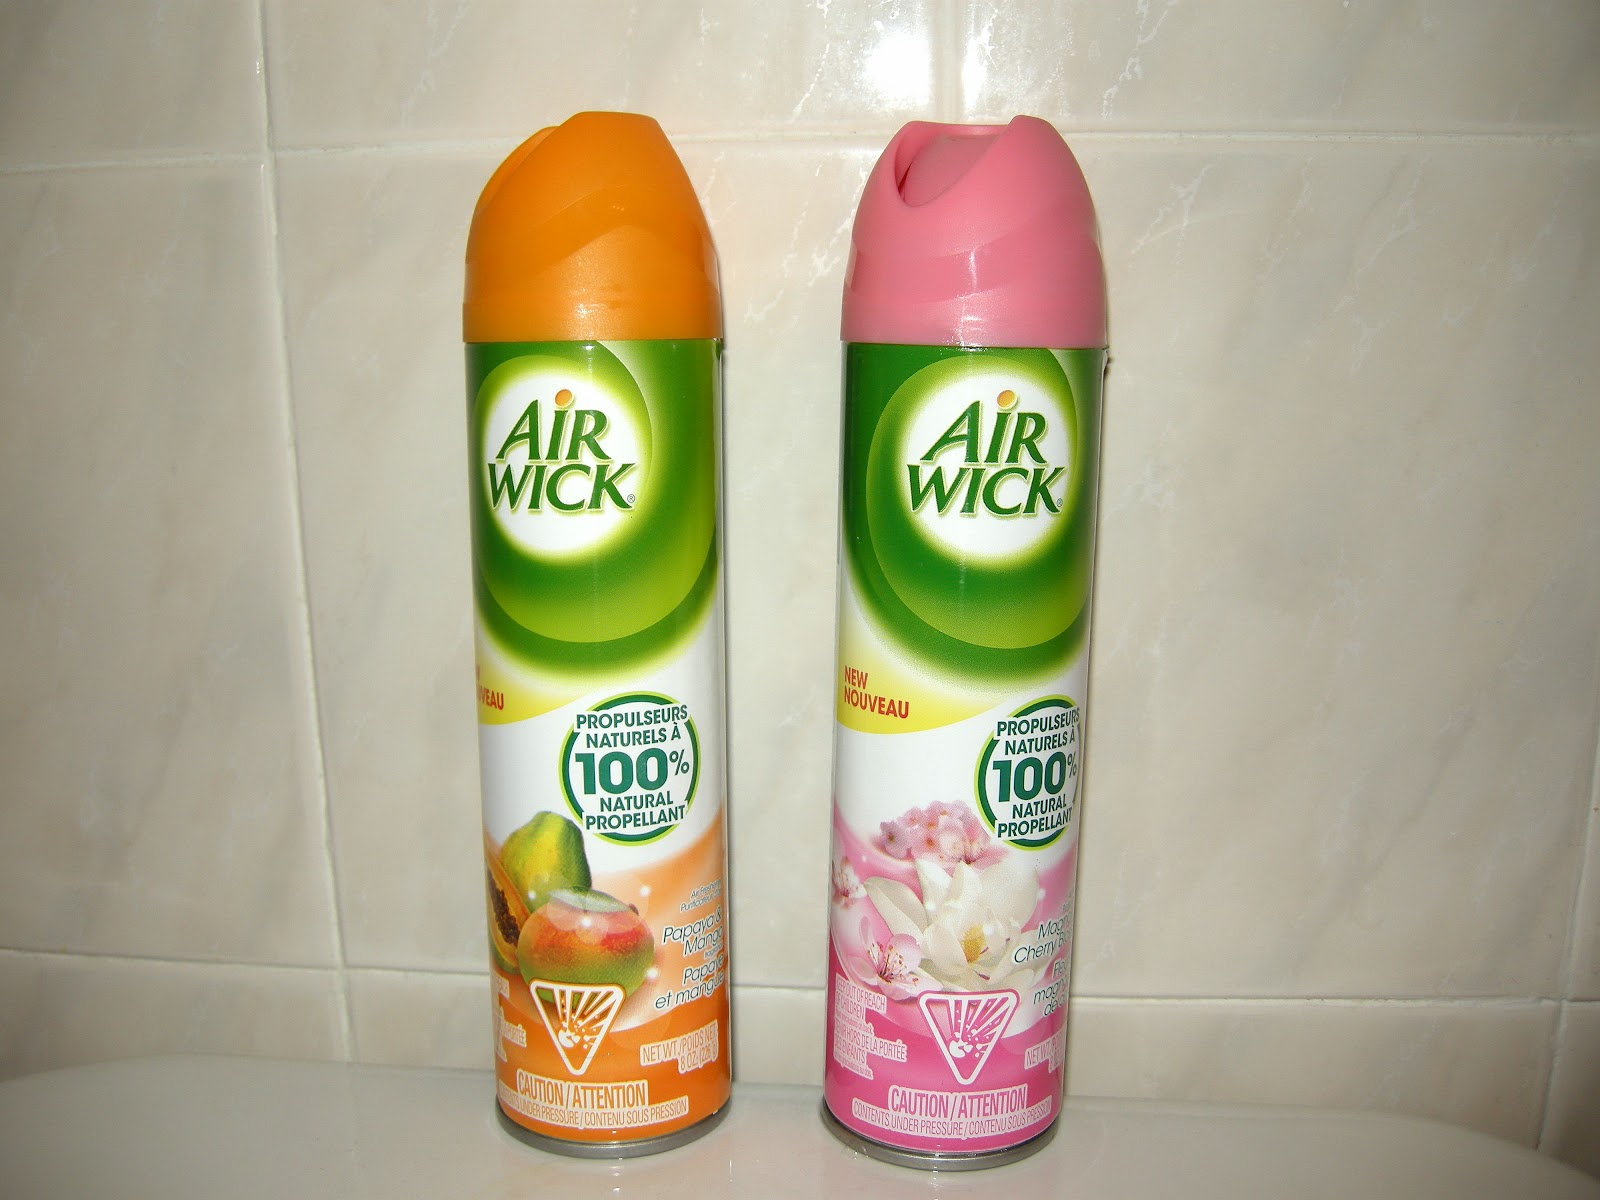 My Jersey Life: Want To Get Injured, Use Air Wick® Air Freshener.